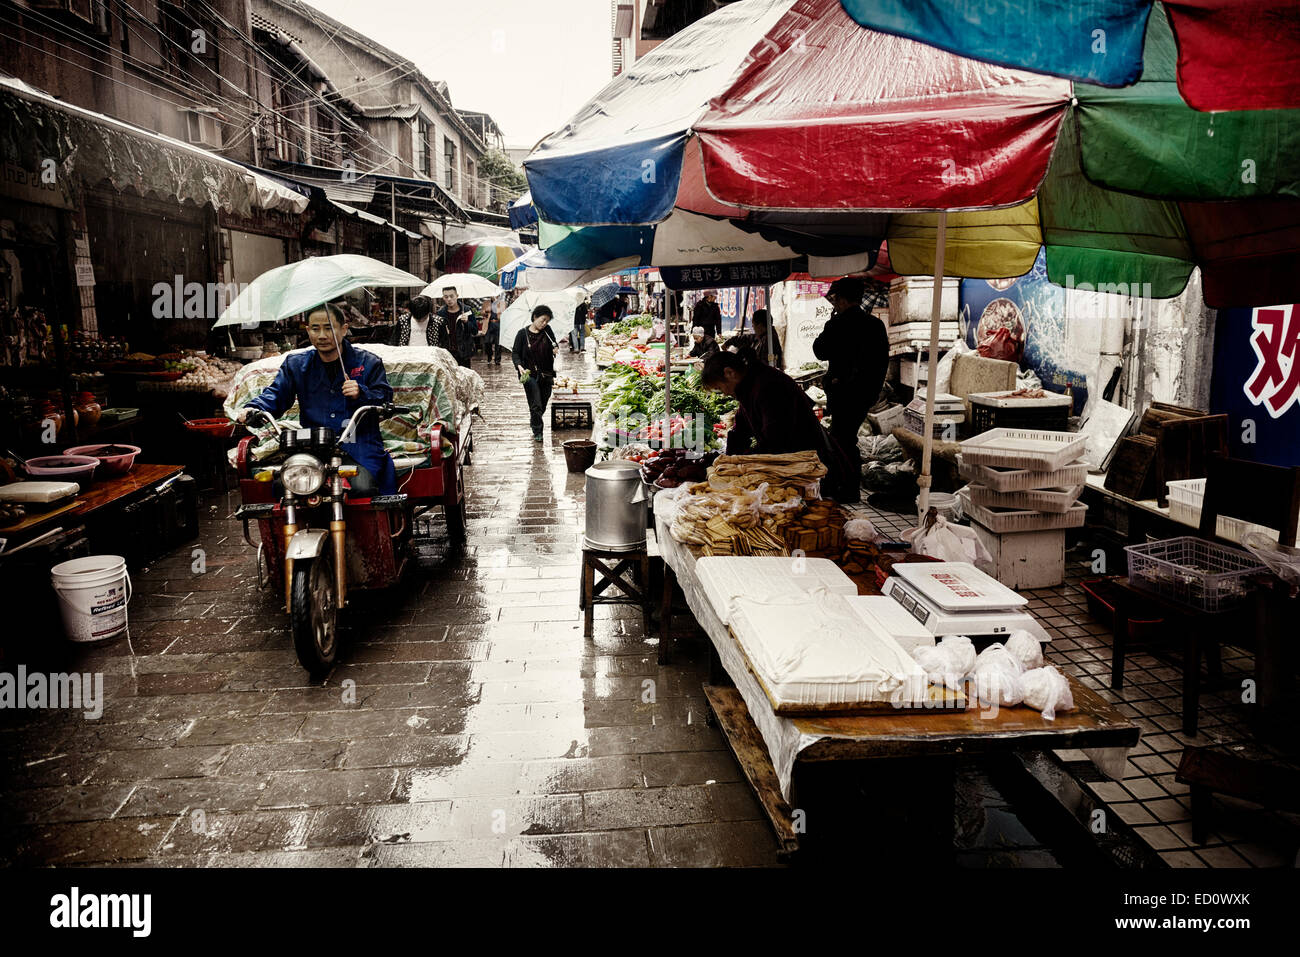 Street food market during rain in Zhangjiajie, Hunan, China 2014 - Stock Image